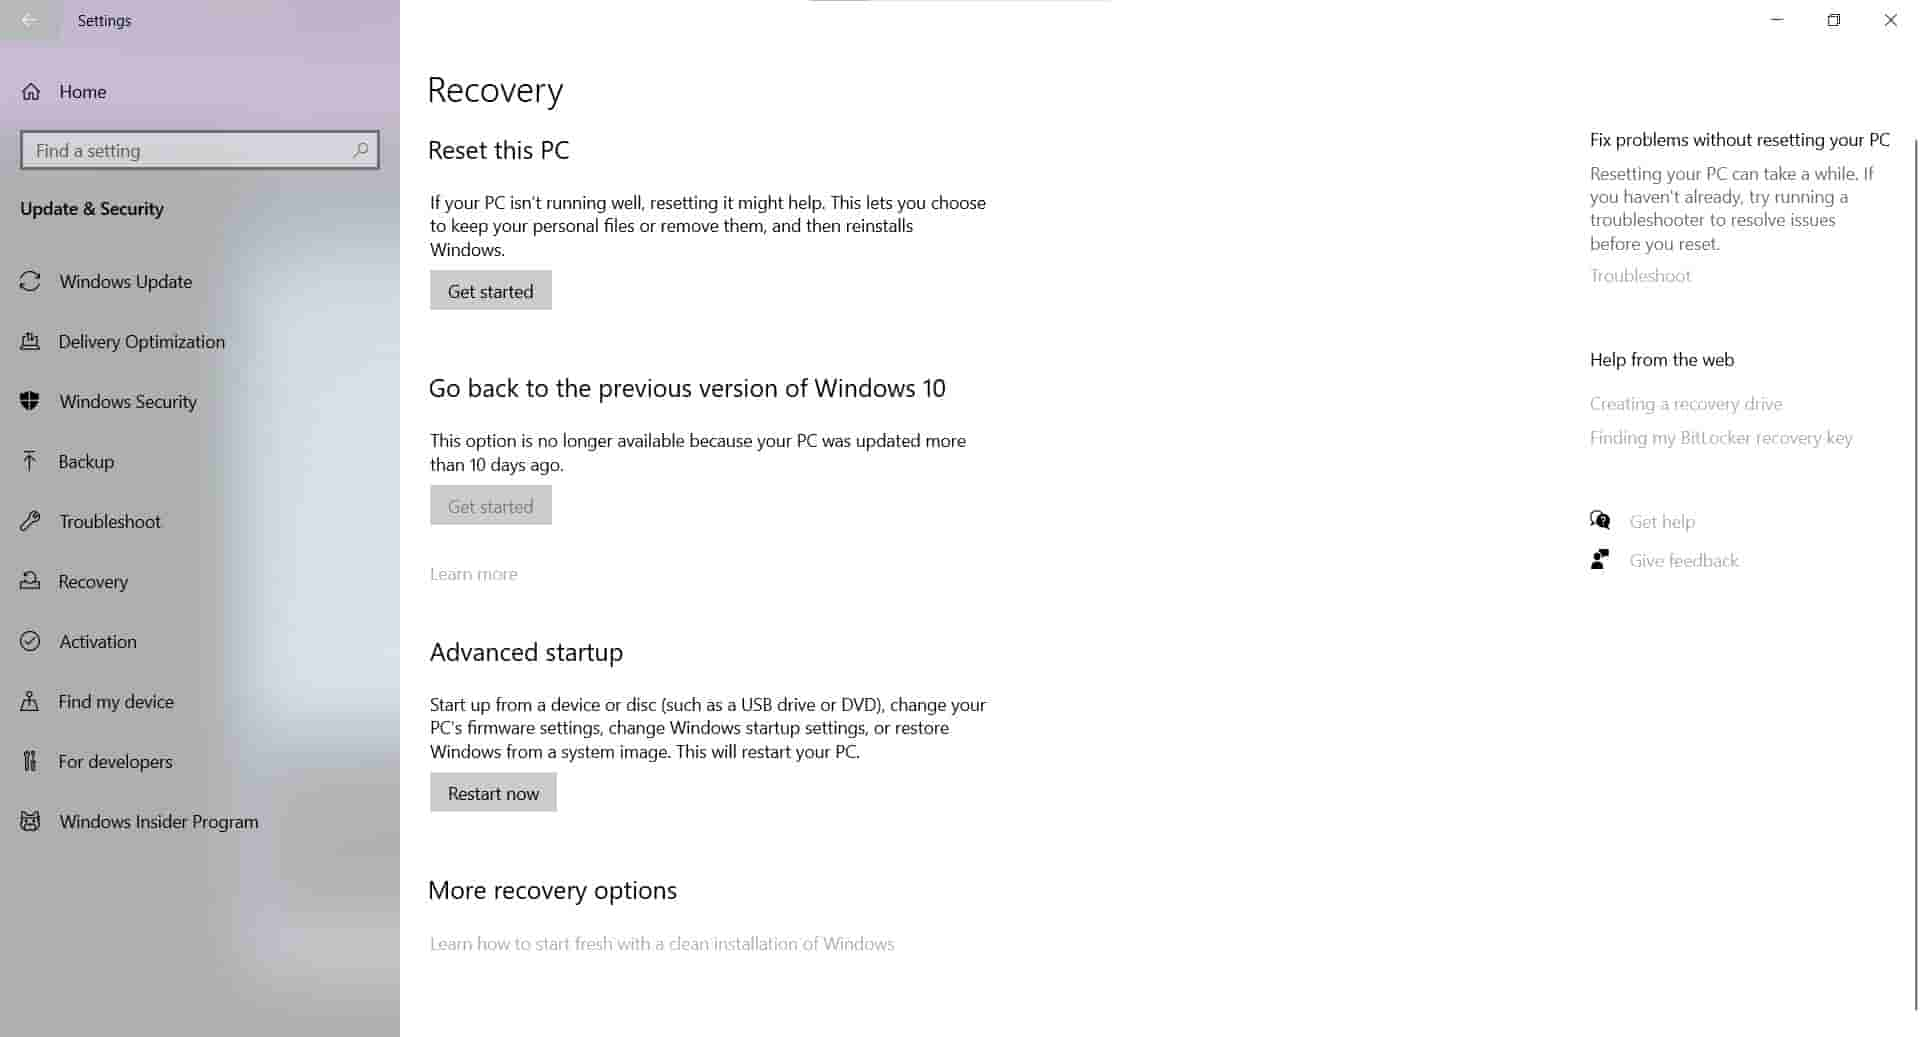 how to rollback to windows 10 from windows 11 without losing data, how to downgrade from windows 11 to windows 10, how to roll back to windows 10, windows 11, windows 10, how to go back to windows 10 from windows 11, how to go back to windows 10 from windows 11 without losing data, go back to windows 10 without losing data